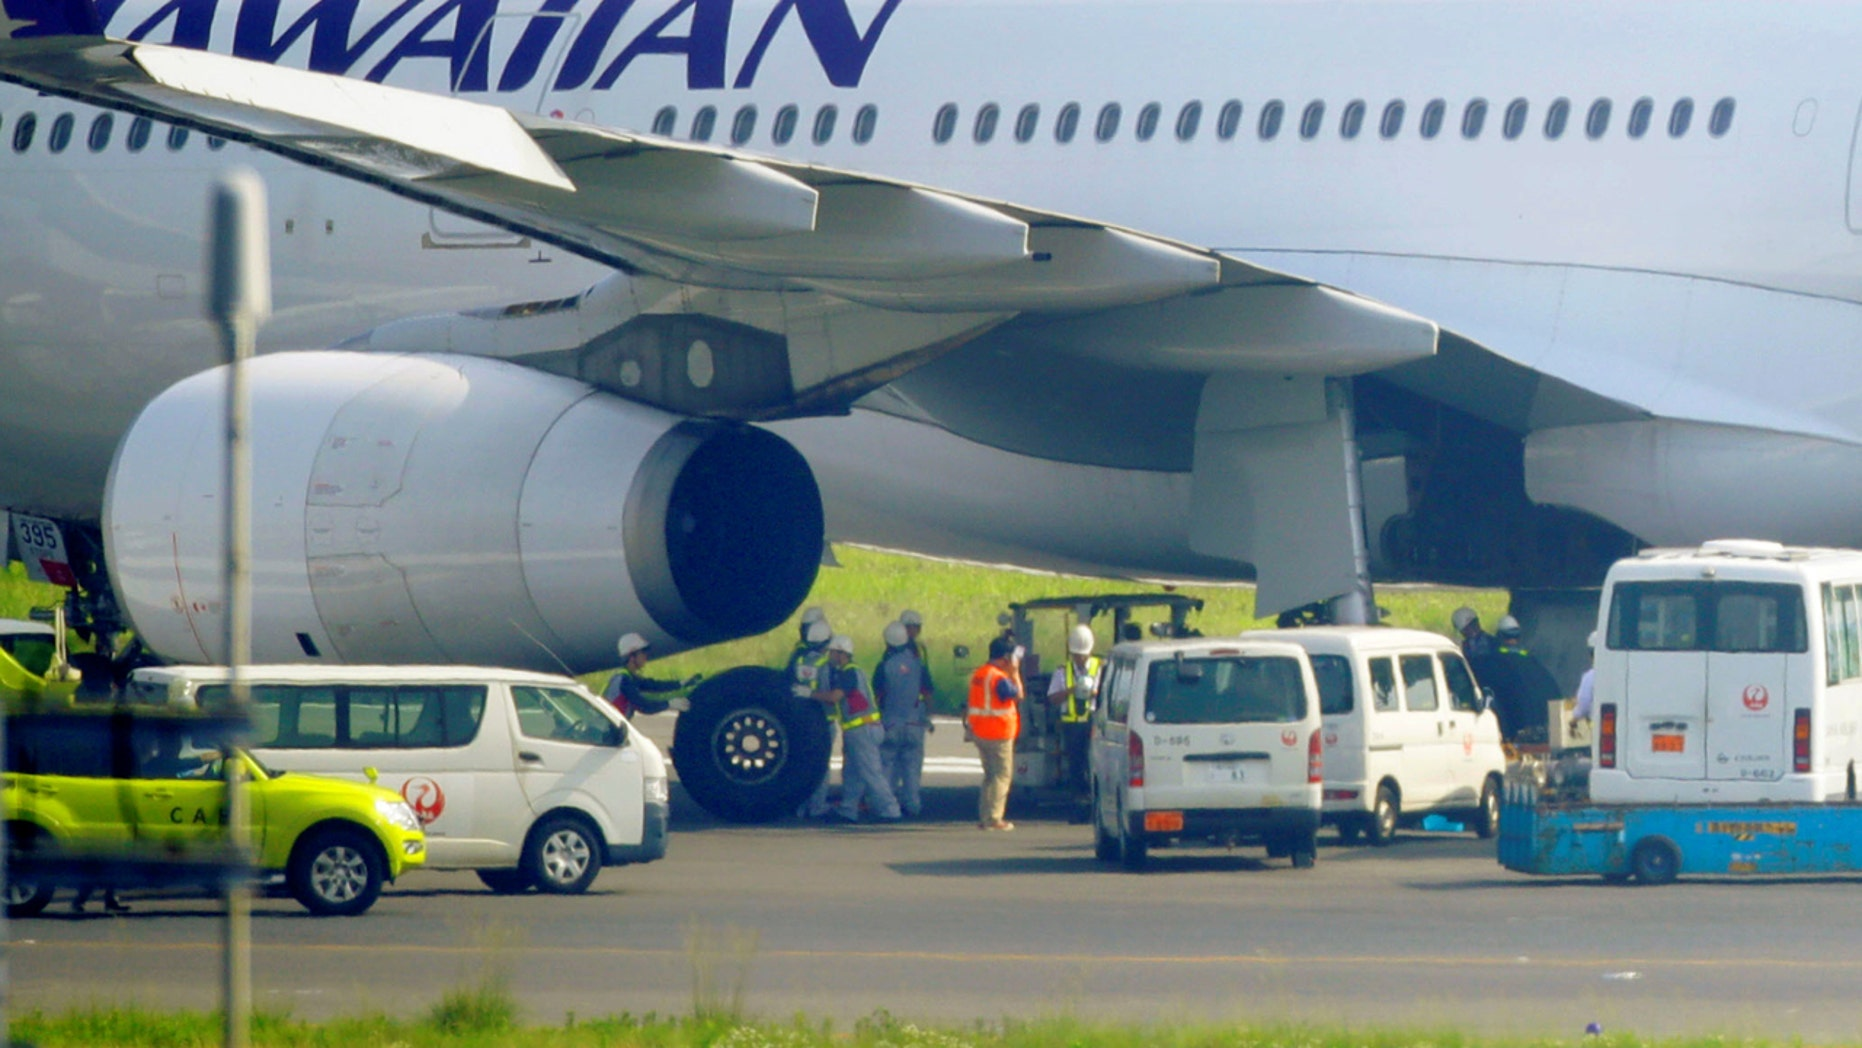 Officials change a tyre of a Hawaiian Airlines aircraft after making emergency landing at Haneda airport in Tokyo, Japan, in this photo taken by Kyodo July 18, 2016. (Reuters)